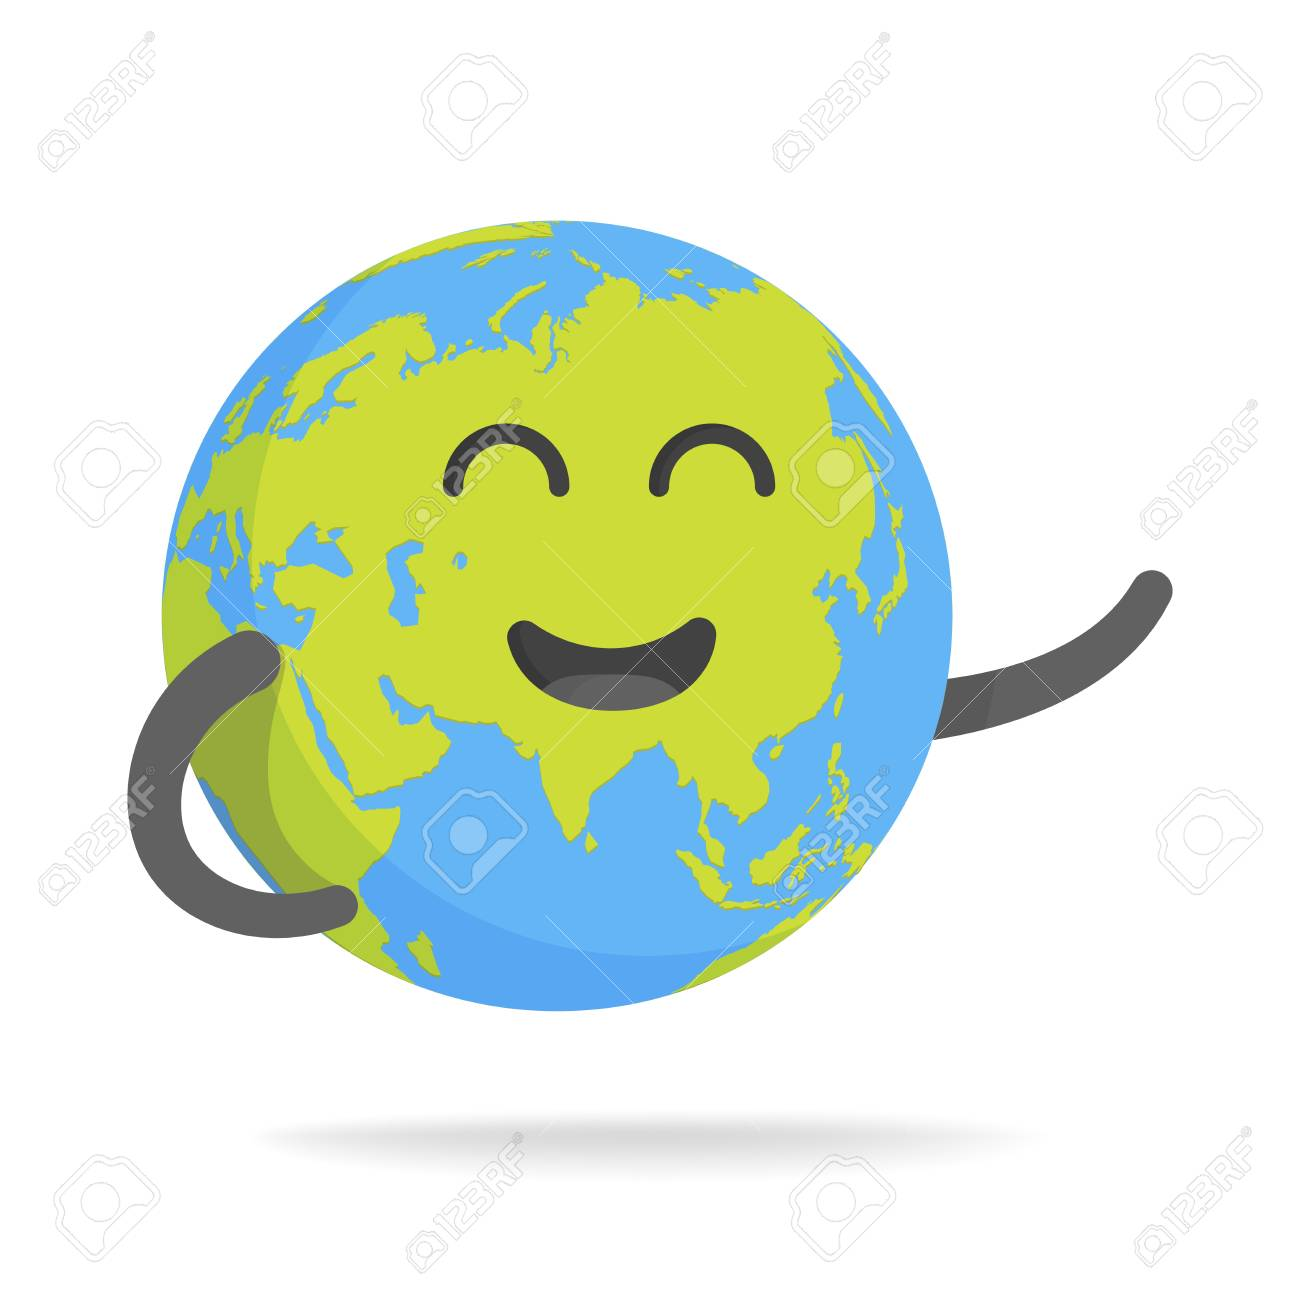 Cute Cartoon Earth Character World Map Globe With Smiley Face